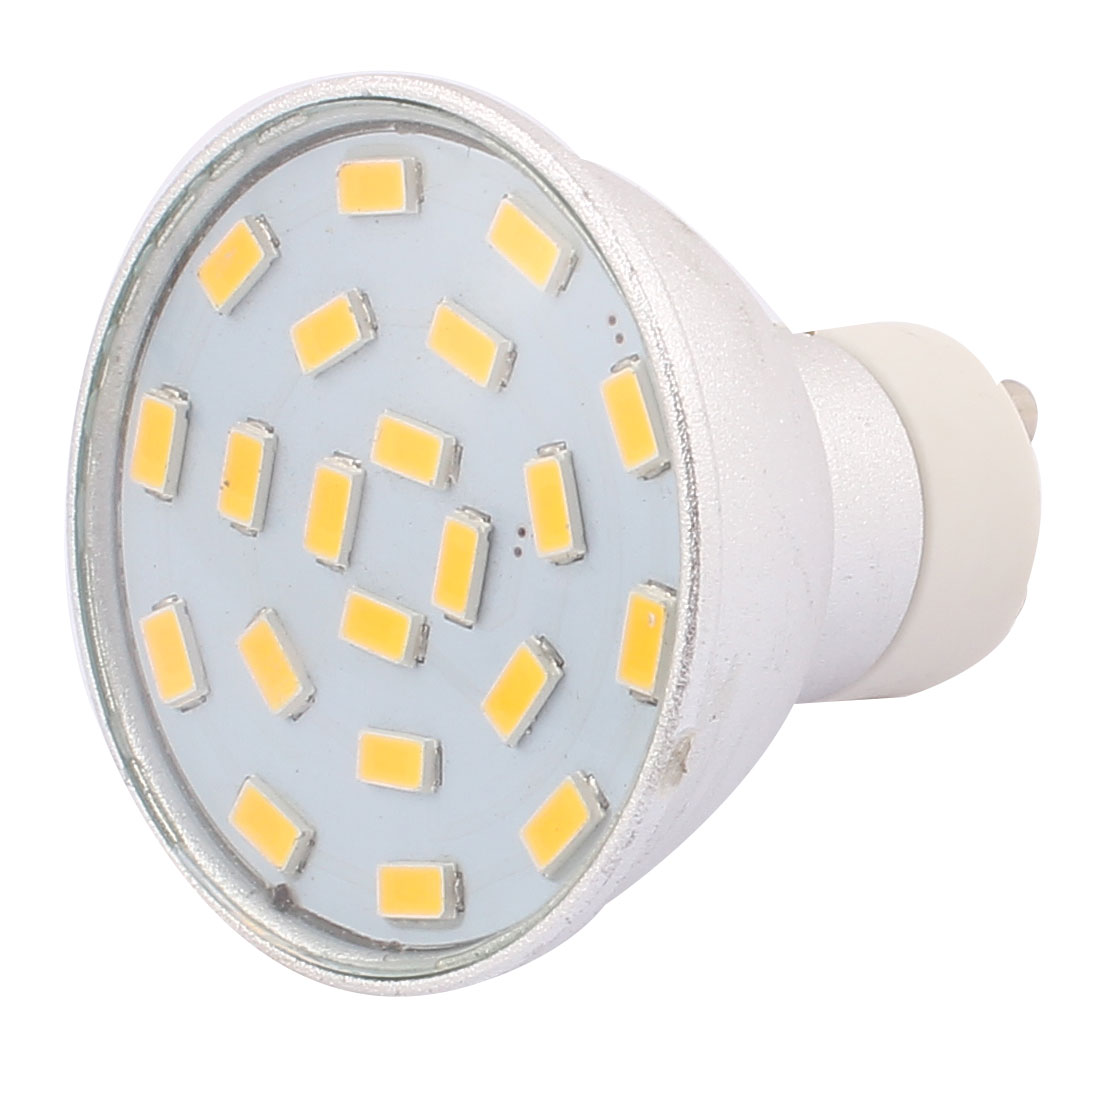 220V-240V GU10 LED Light 3W 5730 SMD 21 LEDs Spotlight Down Lamp Bulb Energ Saving Warm White